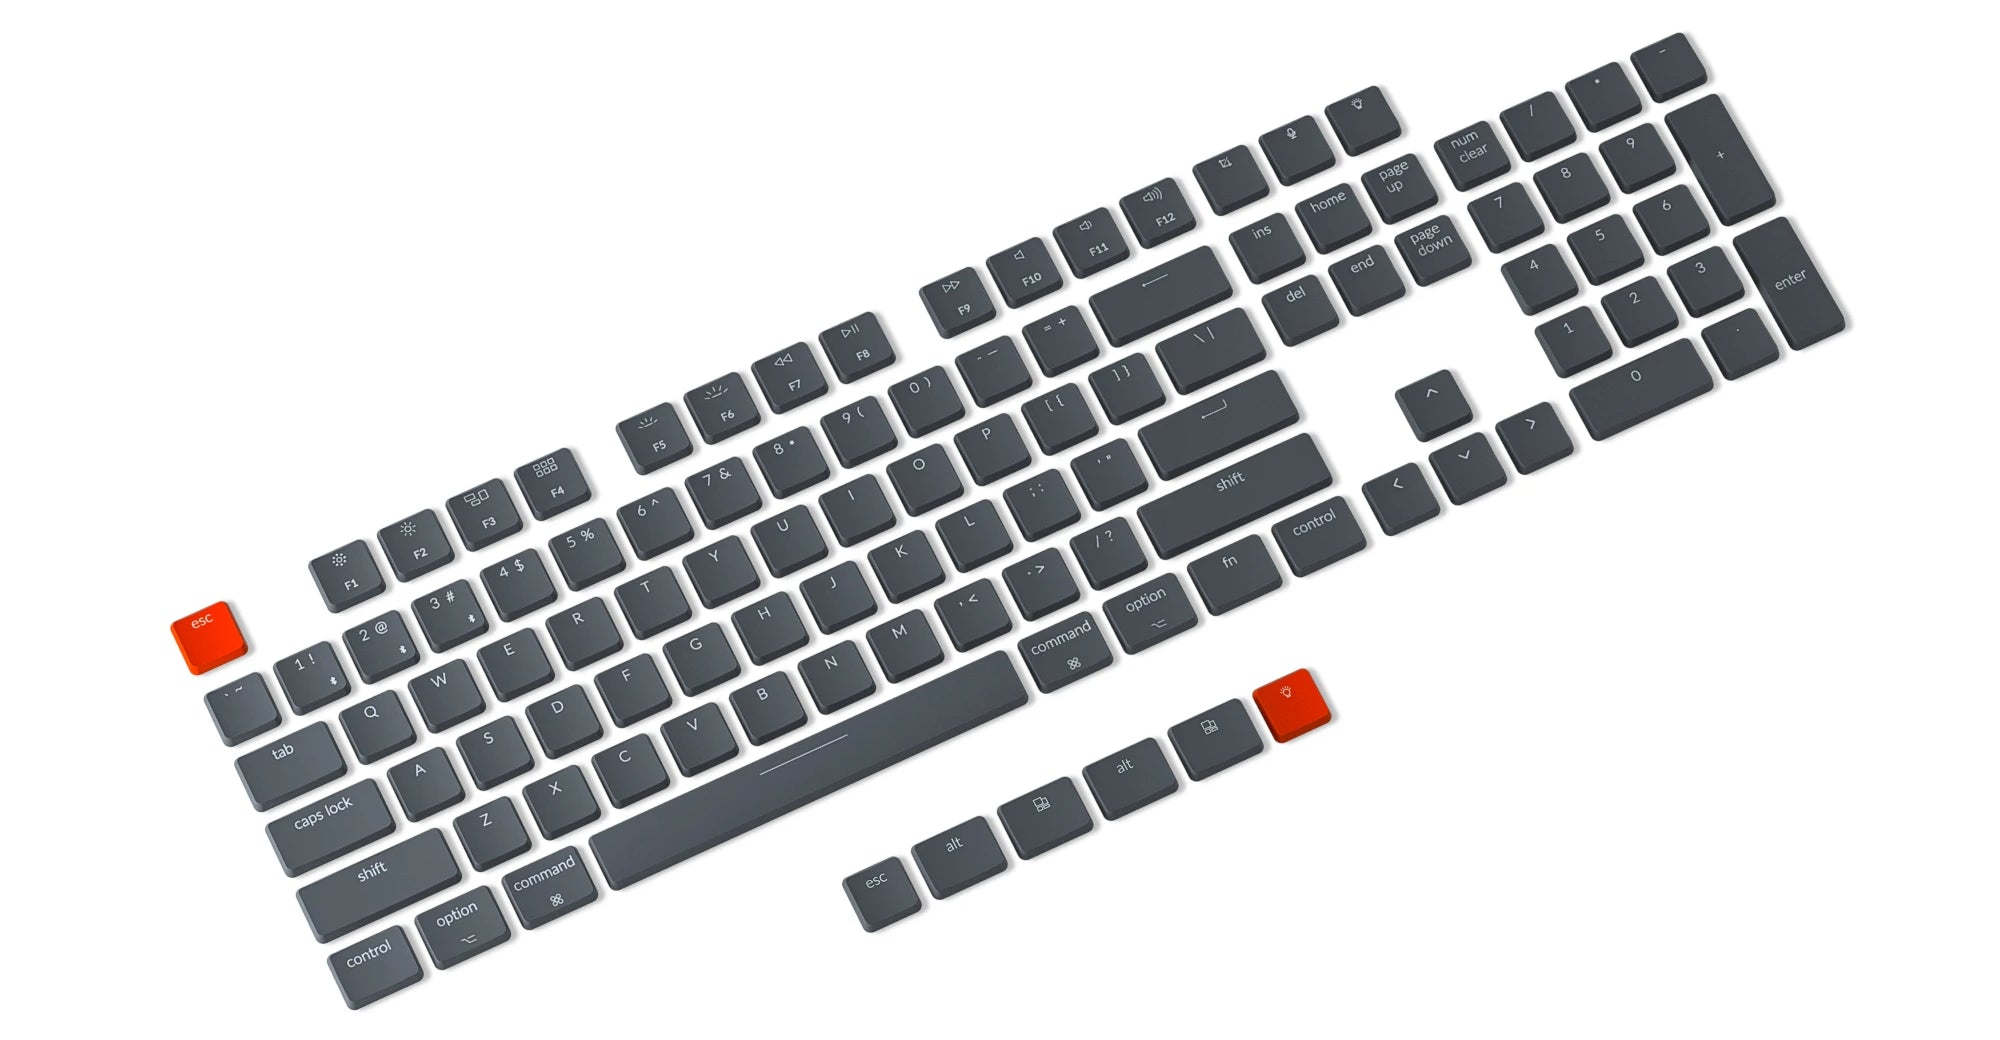 Keychron K8 tenkeyless wireless mechanical keyboard for Mac Windows iOS with Hot-swappable Gateron and Keychron Optical switch red blue brown keycap set